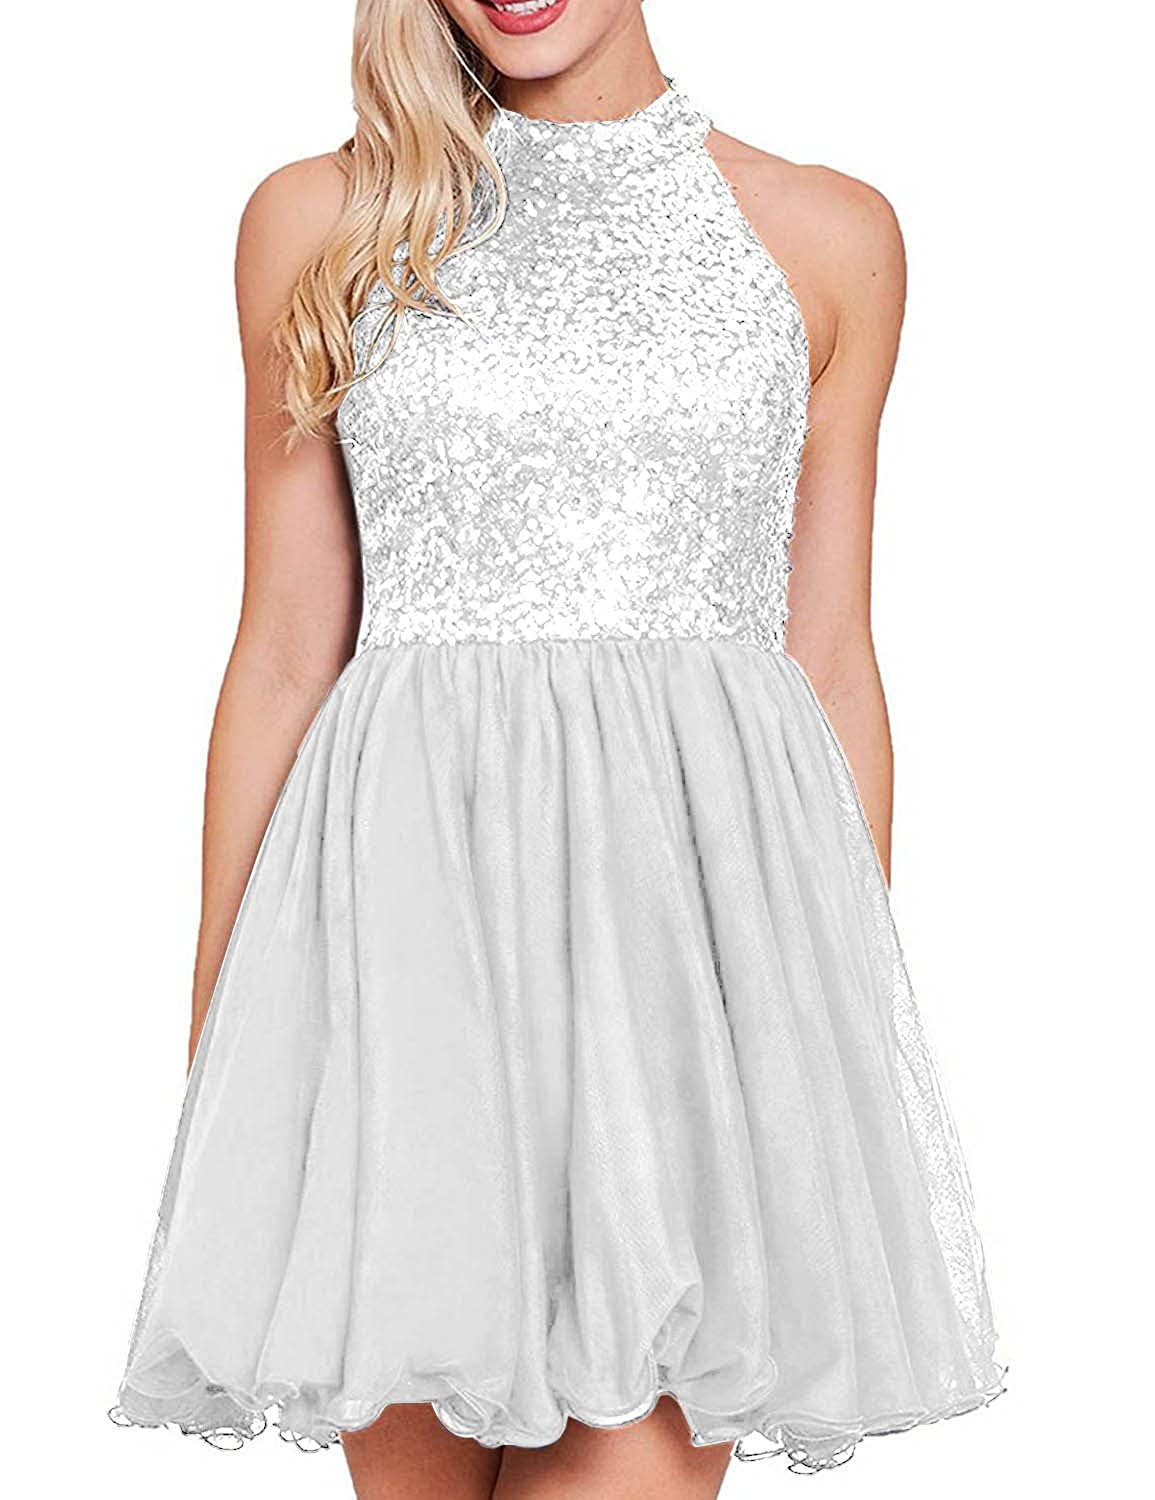 White YIRENWANSHA 2018 Sexy Halter Homecoming Dress Shiny Sequined Empire Waist Short Party Gown YW47